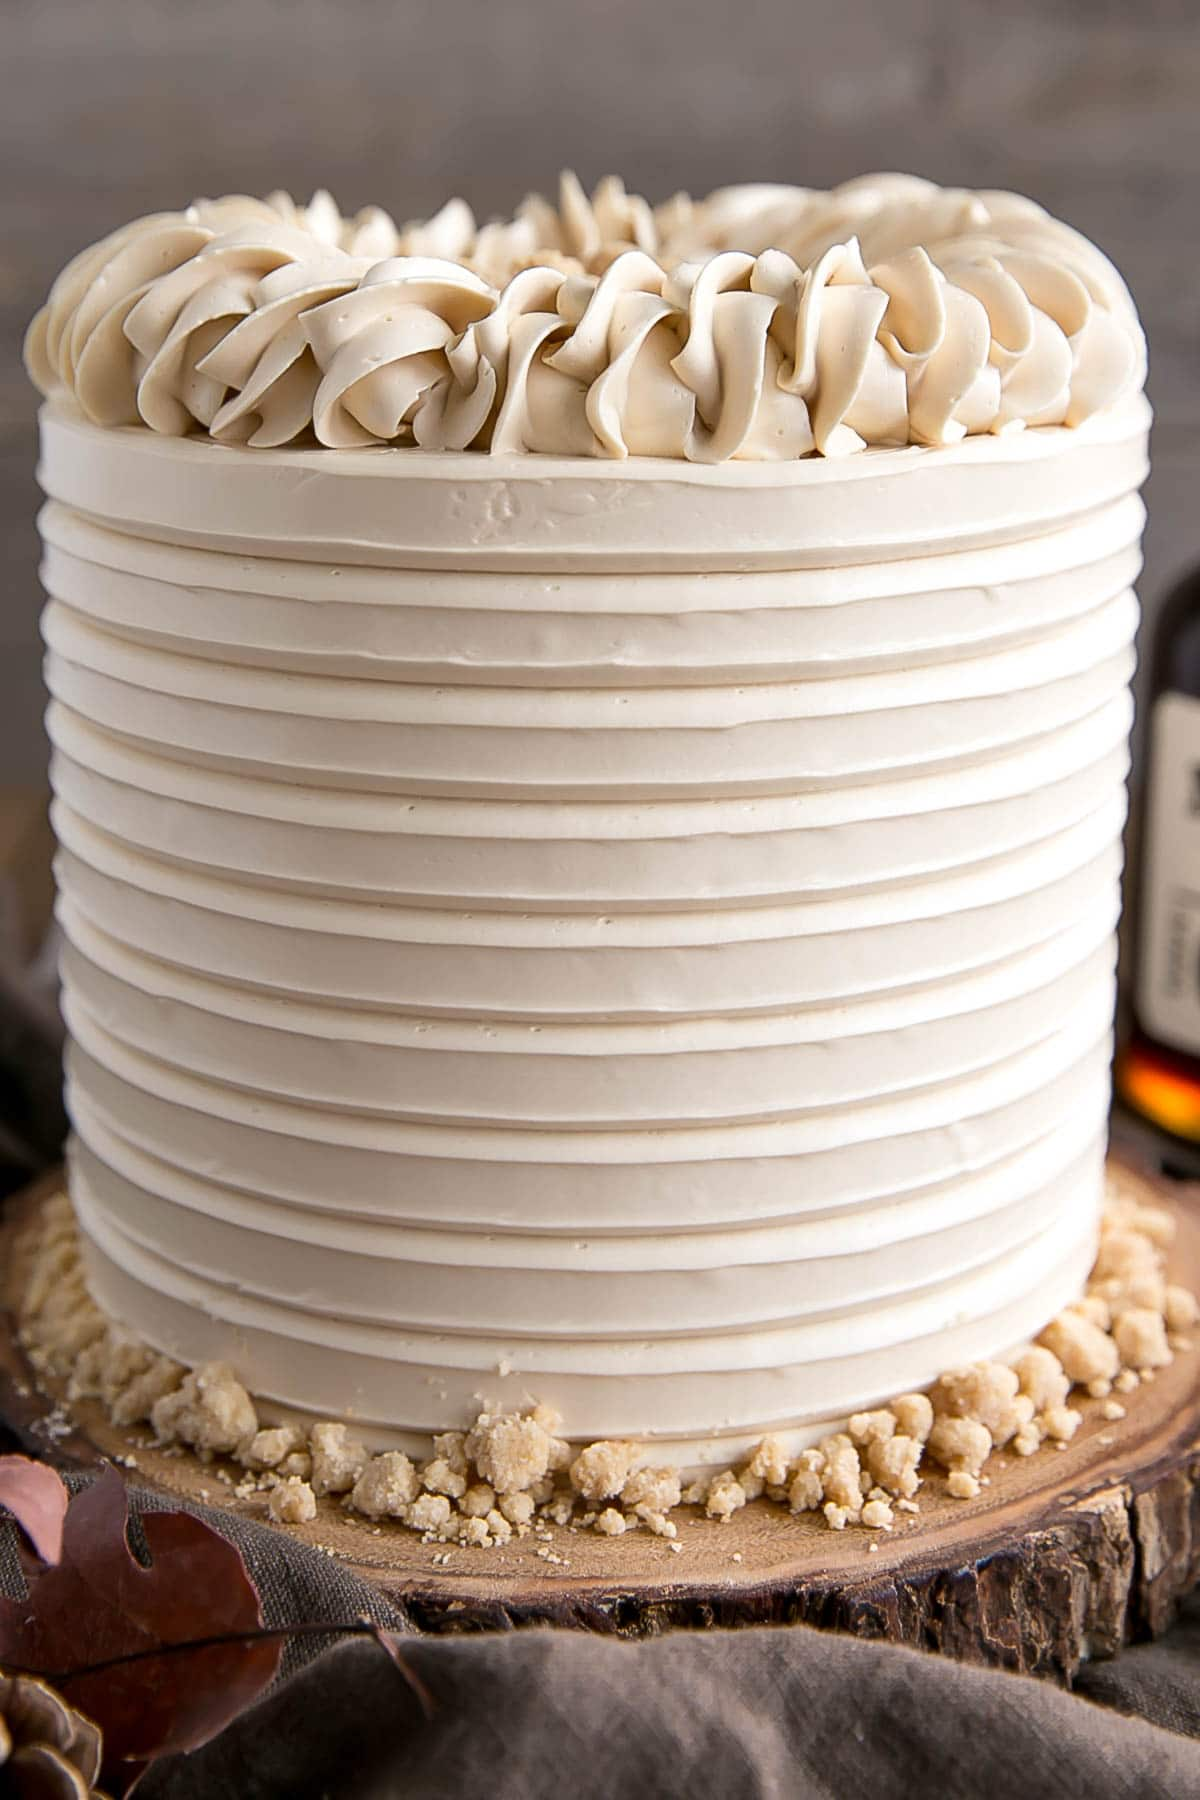 Close up of Maple Cake showing textured frosting and rope border.